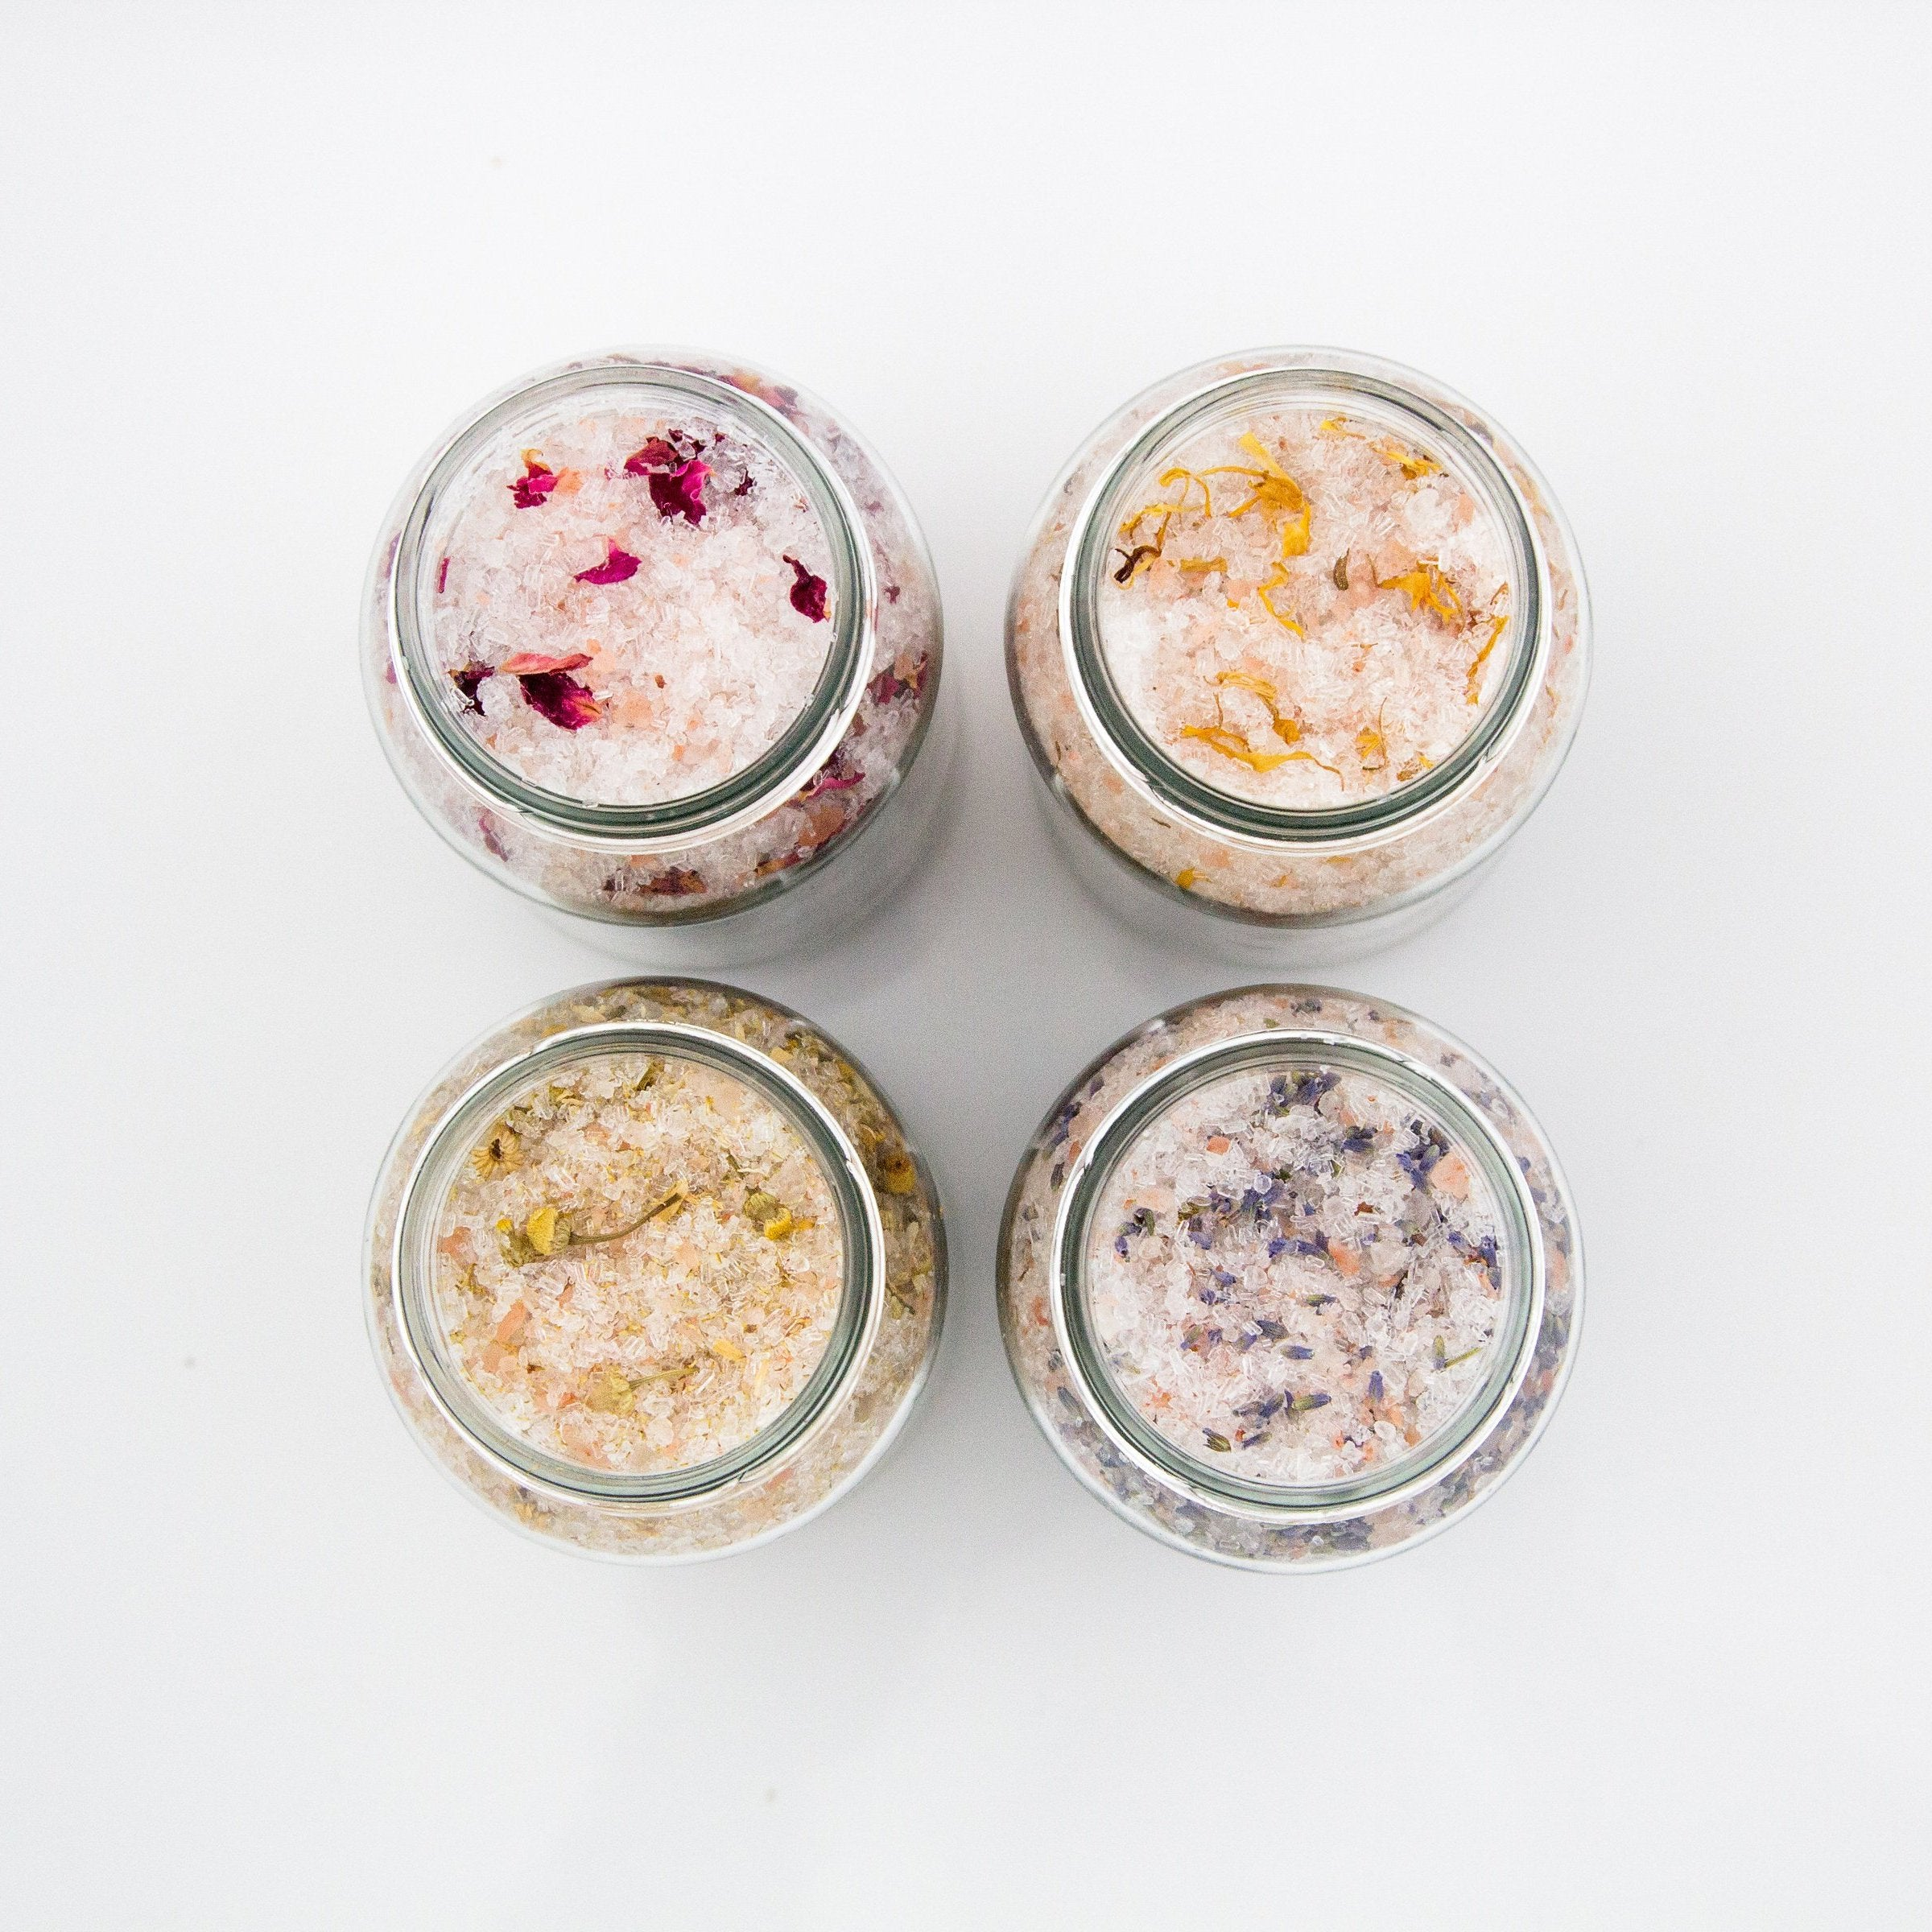 Unique blend of therapeutic minerals, salts and oils